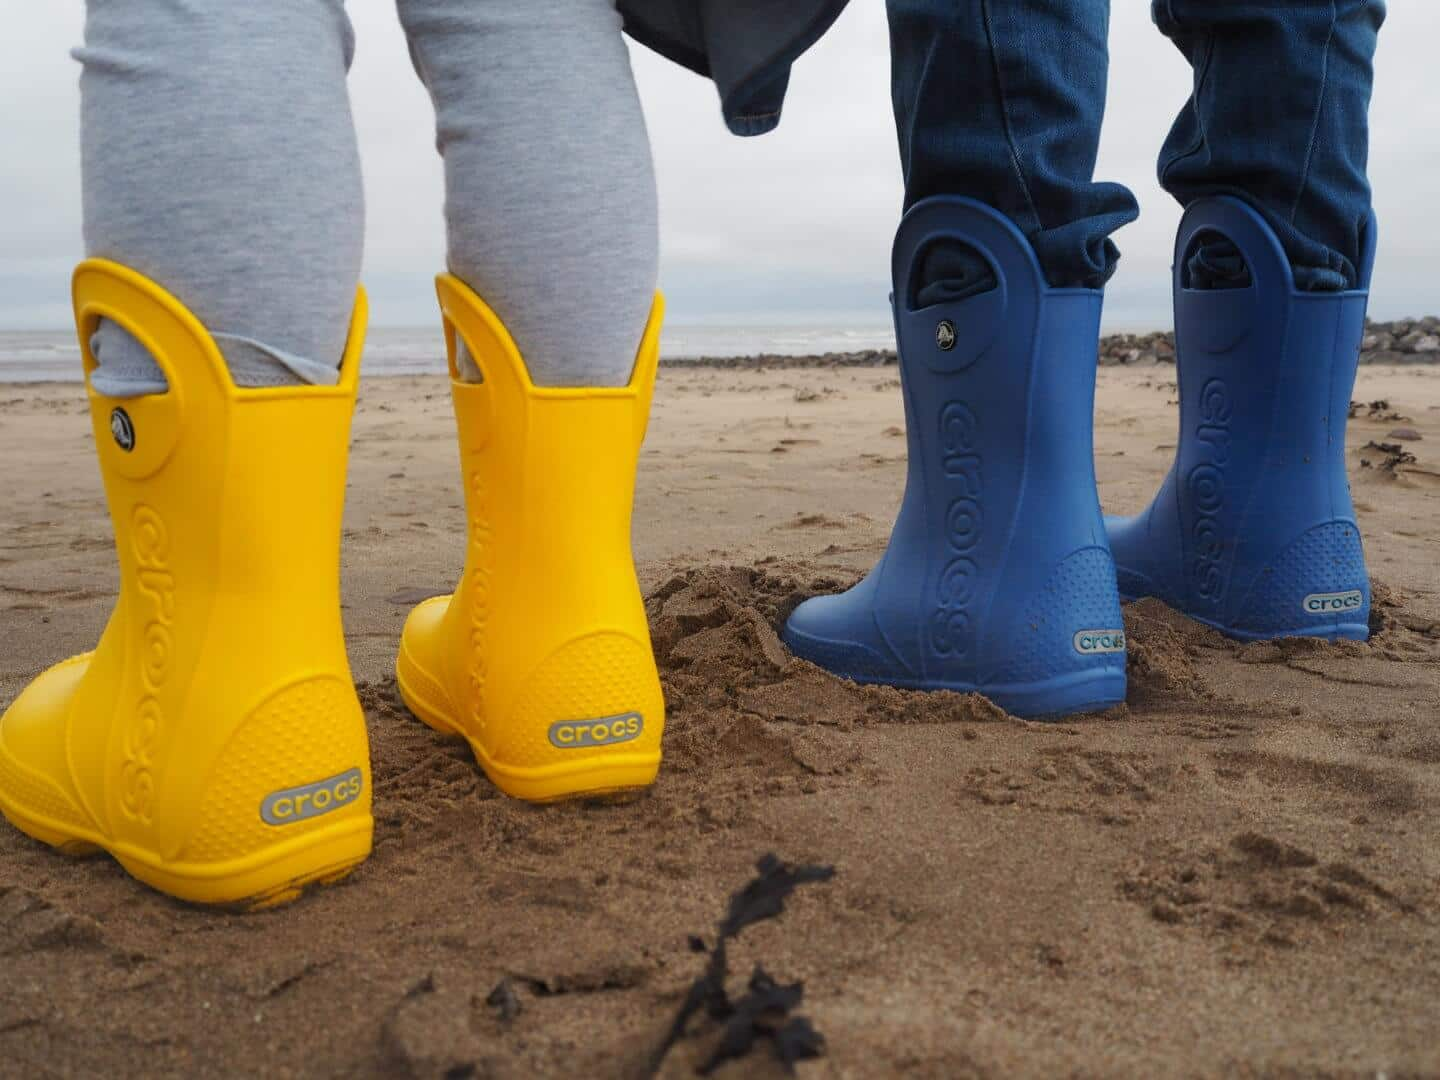 49197ef5a86792 Crocs Wellies Giveaway - Twinderelmo